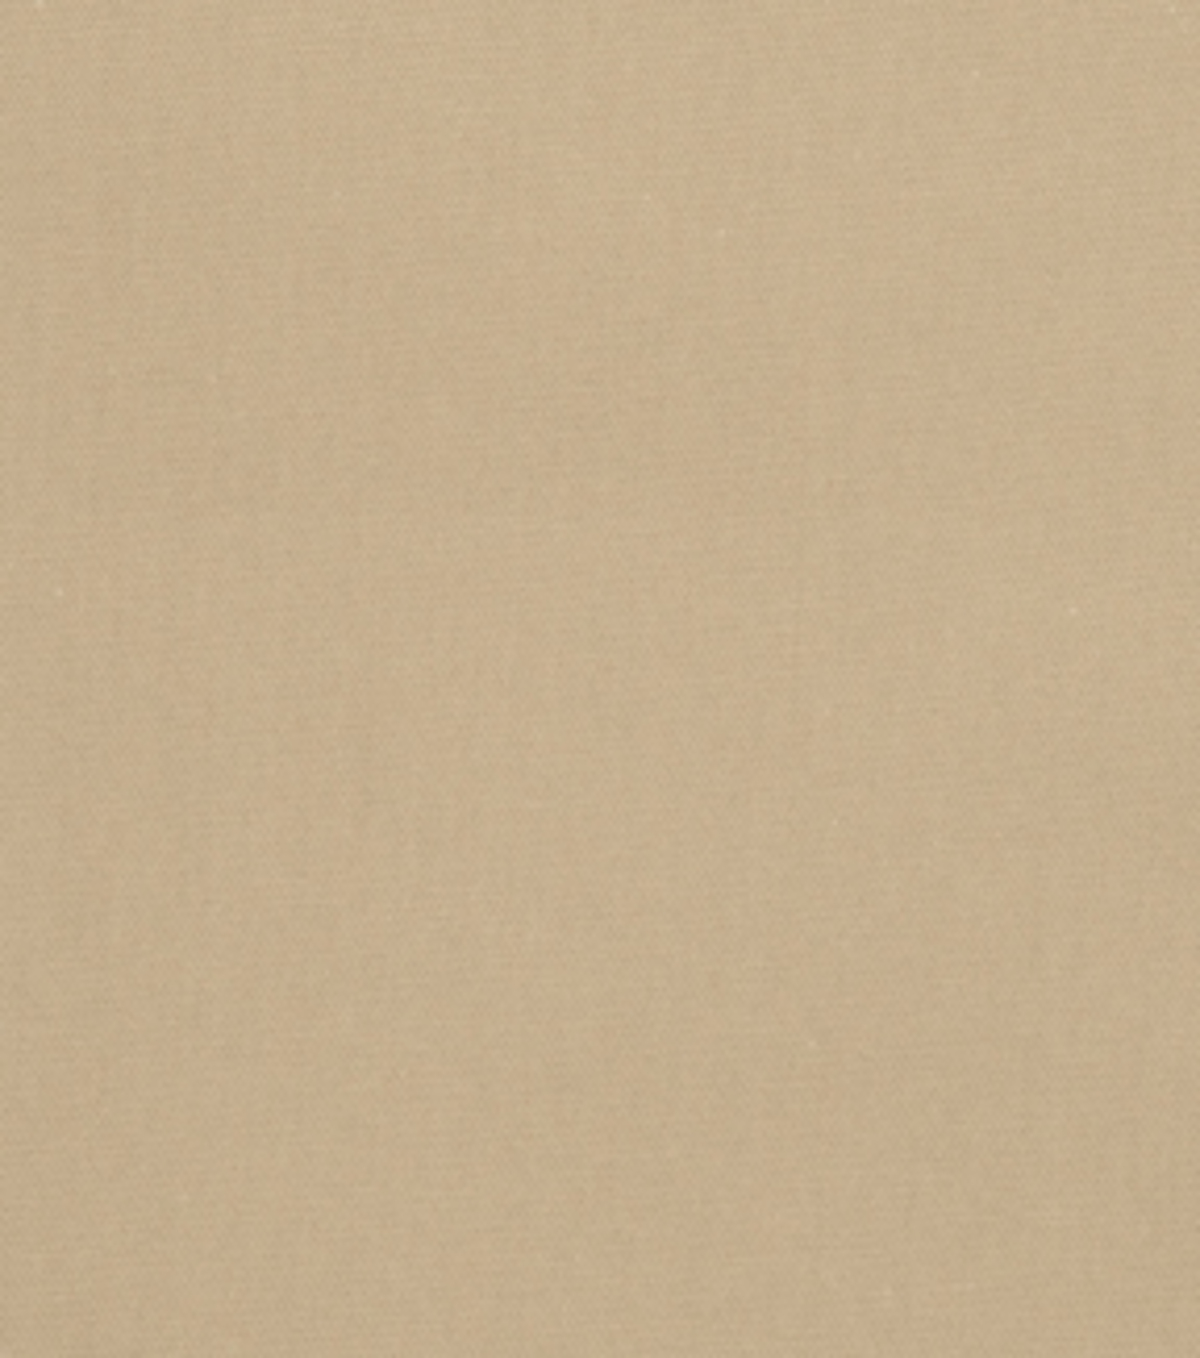 Home Decor 8\u0022x8\u0022 Fabric Swatch-Signature Series Legacy Cotton Siskal